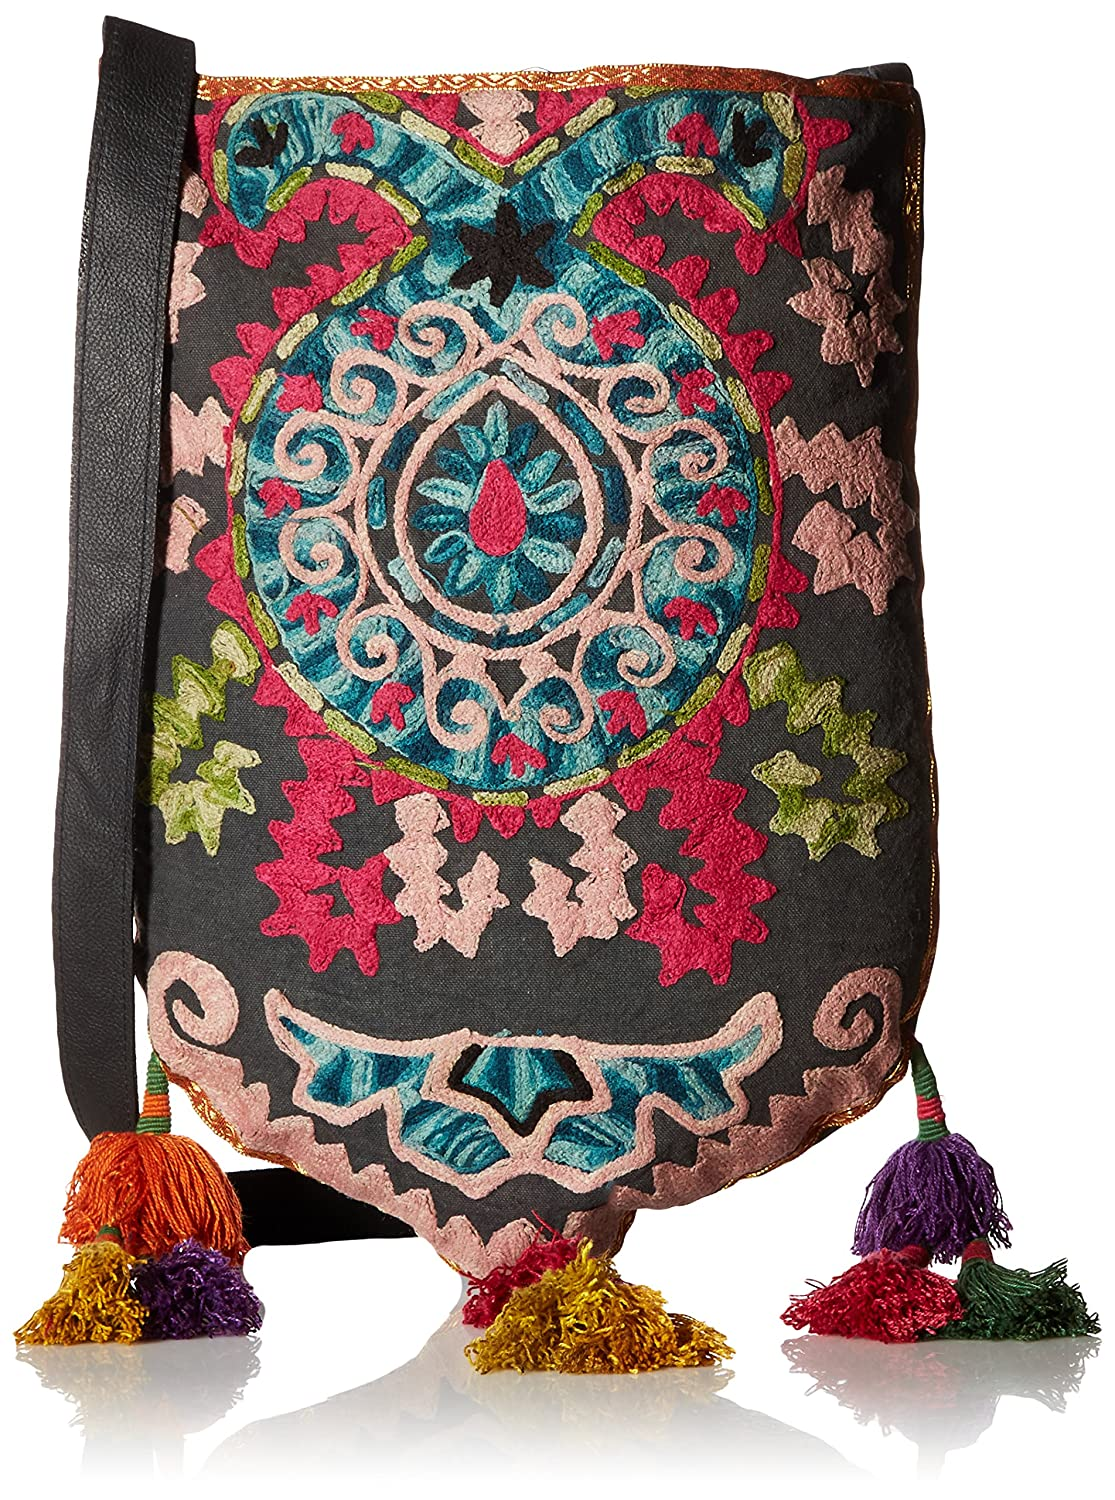 Multi 'ale by alessandra Women's Suzani Embroidered Tribal Bag With Tassels